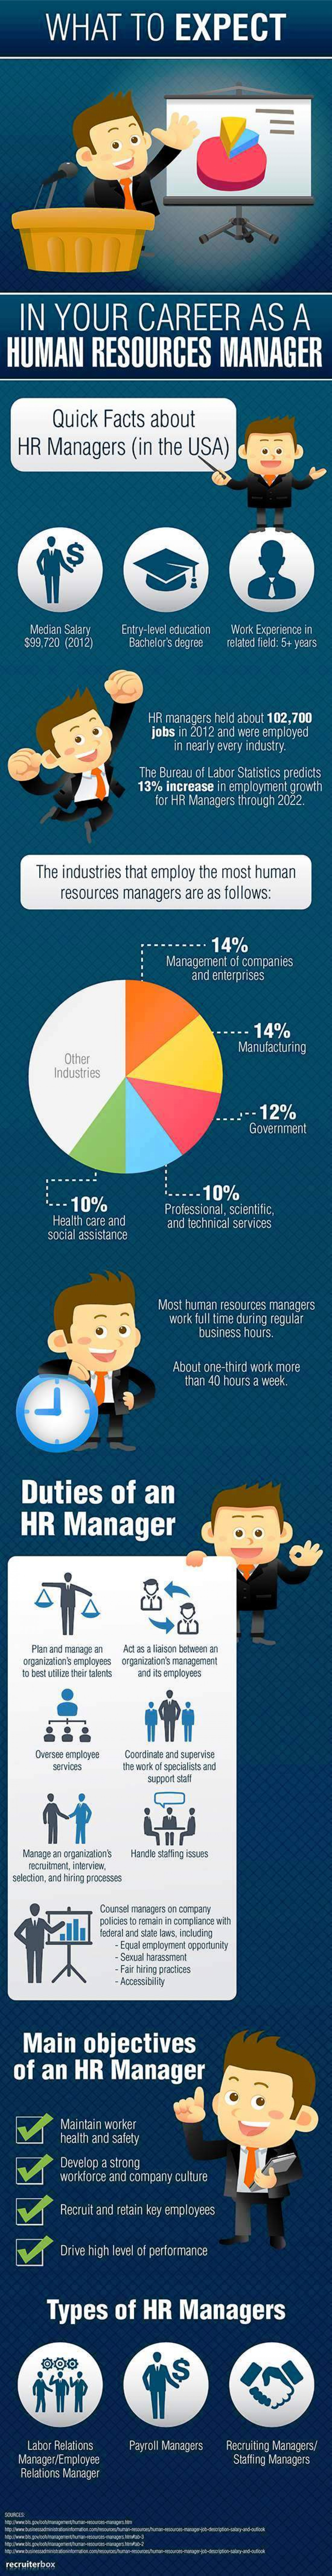 what to expect in your career as a human resources manager ly what to expect in your career as a human resources manager infographic